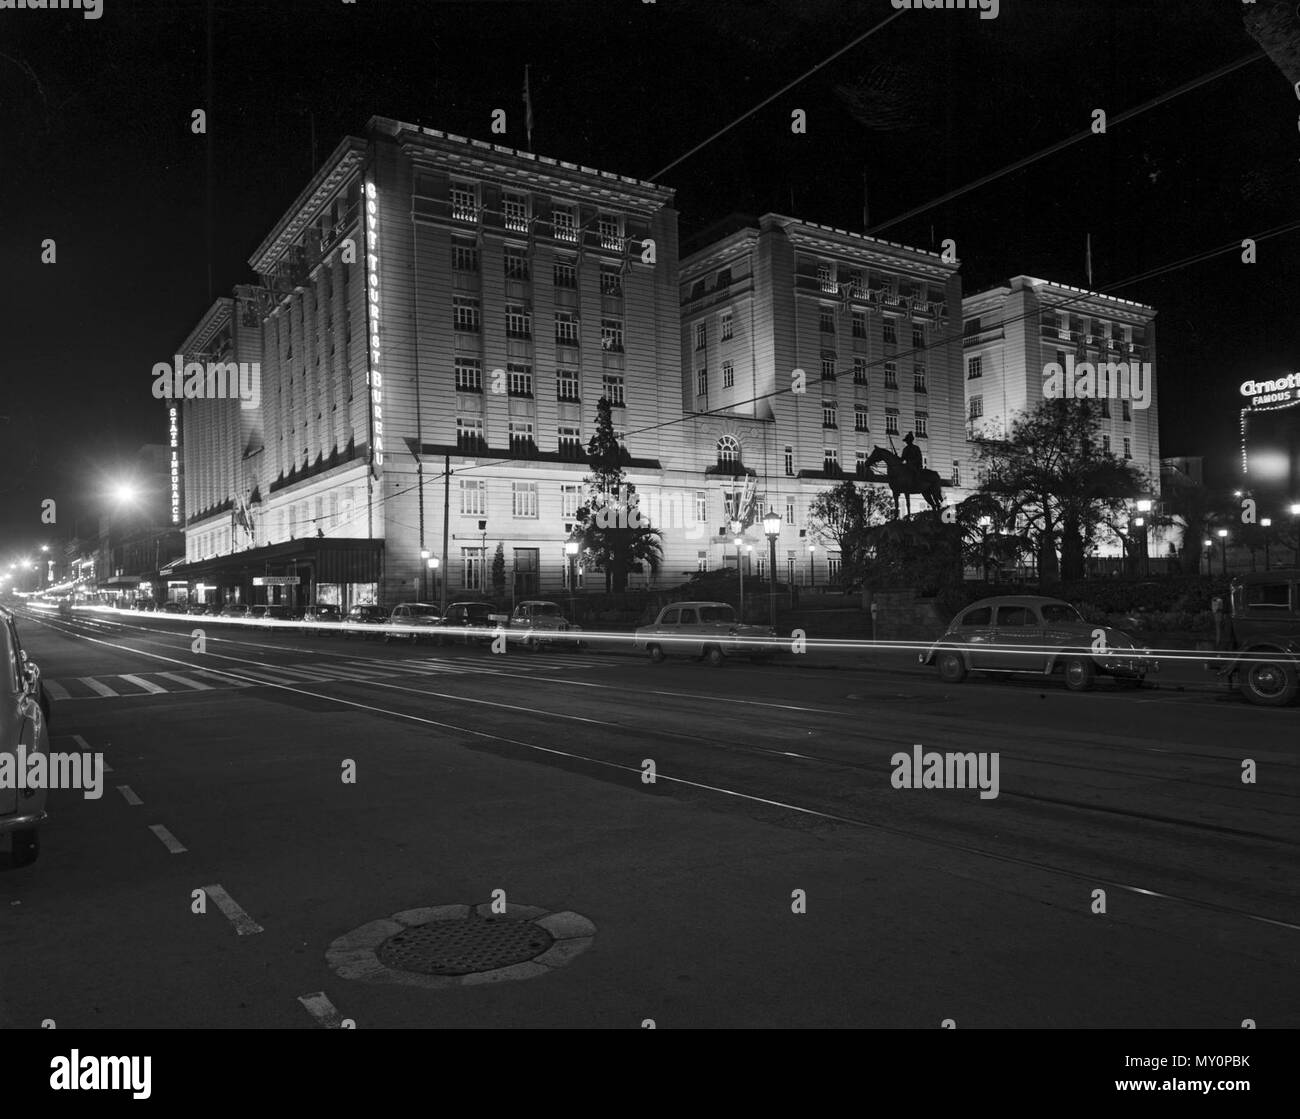 Queensland Government Offices, Ann Street, Brisbane, February 1958. The Queensland Government Offices (Anzac Square Building) were illuminated for the 1958 Royal Tour. The building was listed on the Queensland Heritage Registerid=600059 )  in 1992. - Stock Image